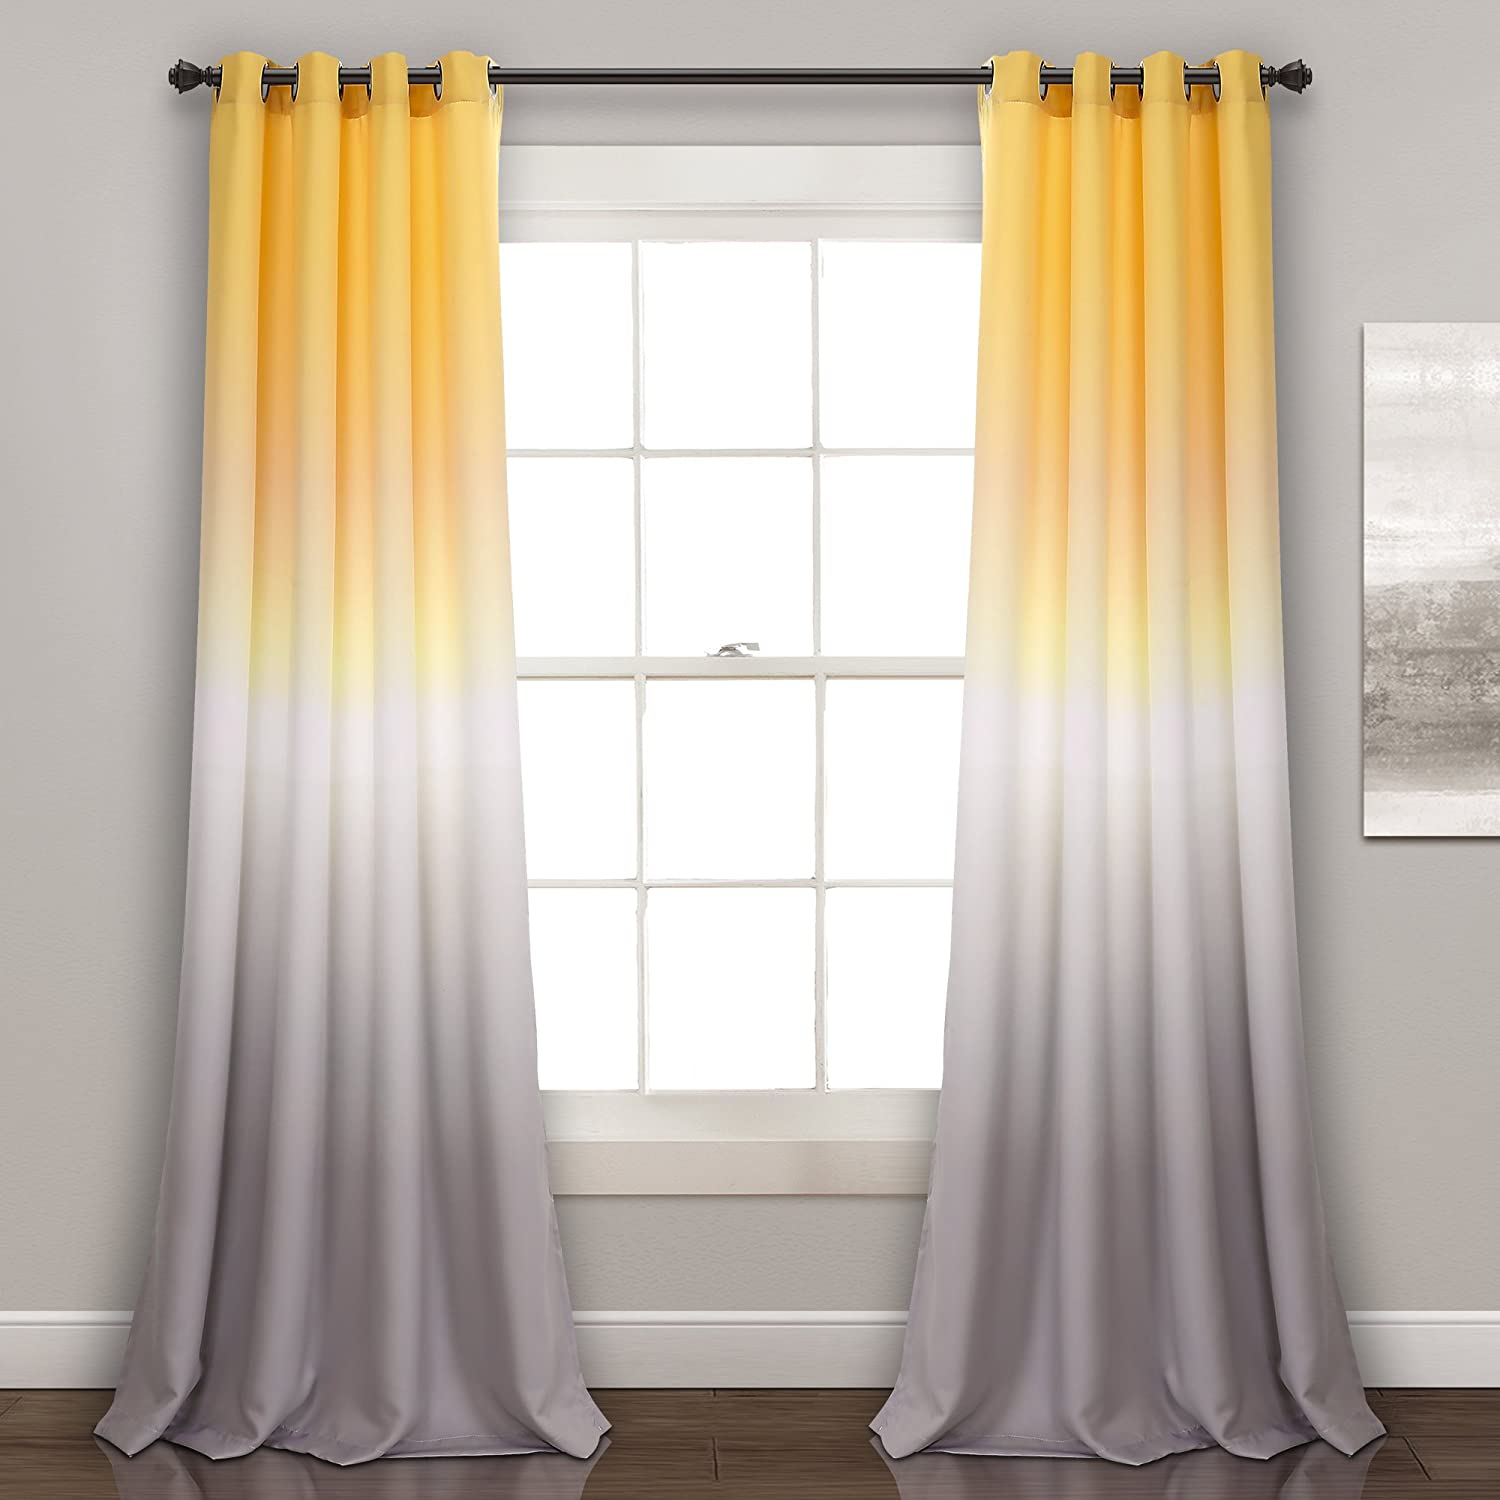 "Lush Decor Ombre Fiesta Curtains Room Darkening Window Panel Set for Living, Dining, Bedroom (Pair), 84"" x 52"", Yellow and Gray"